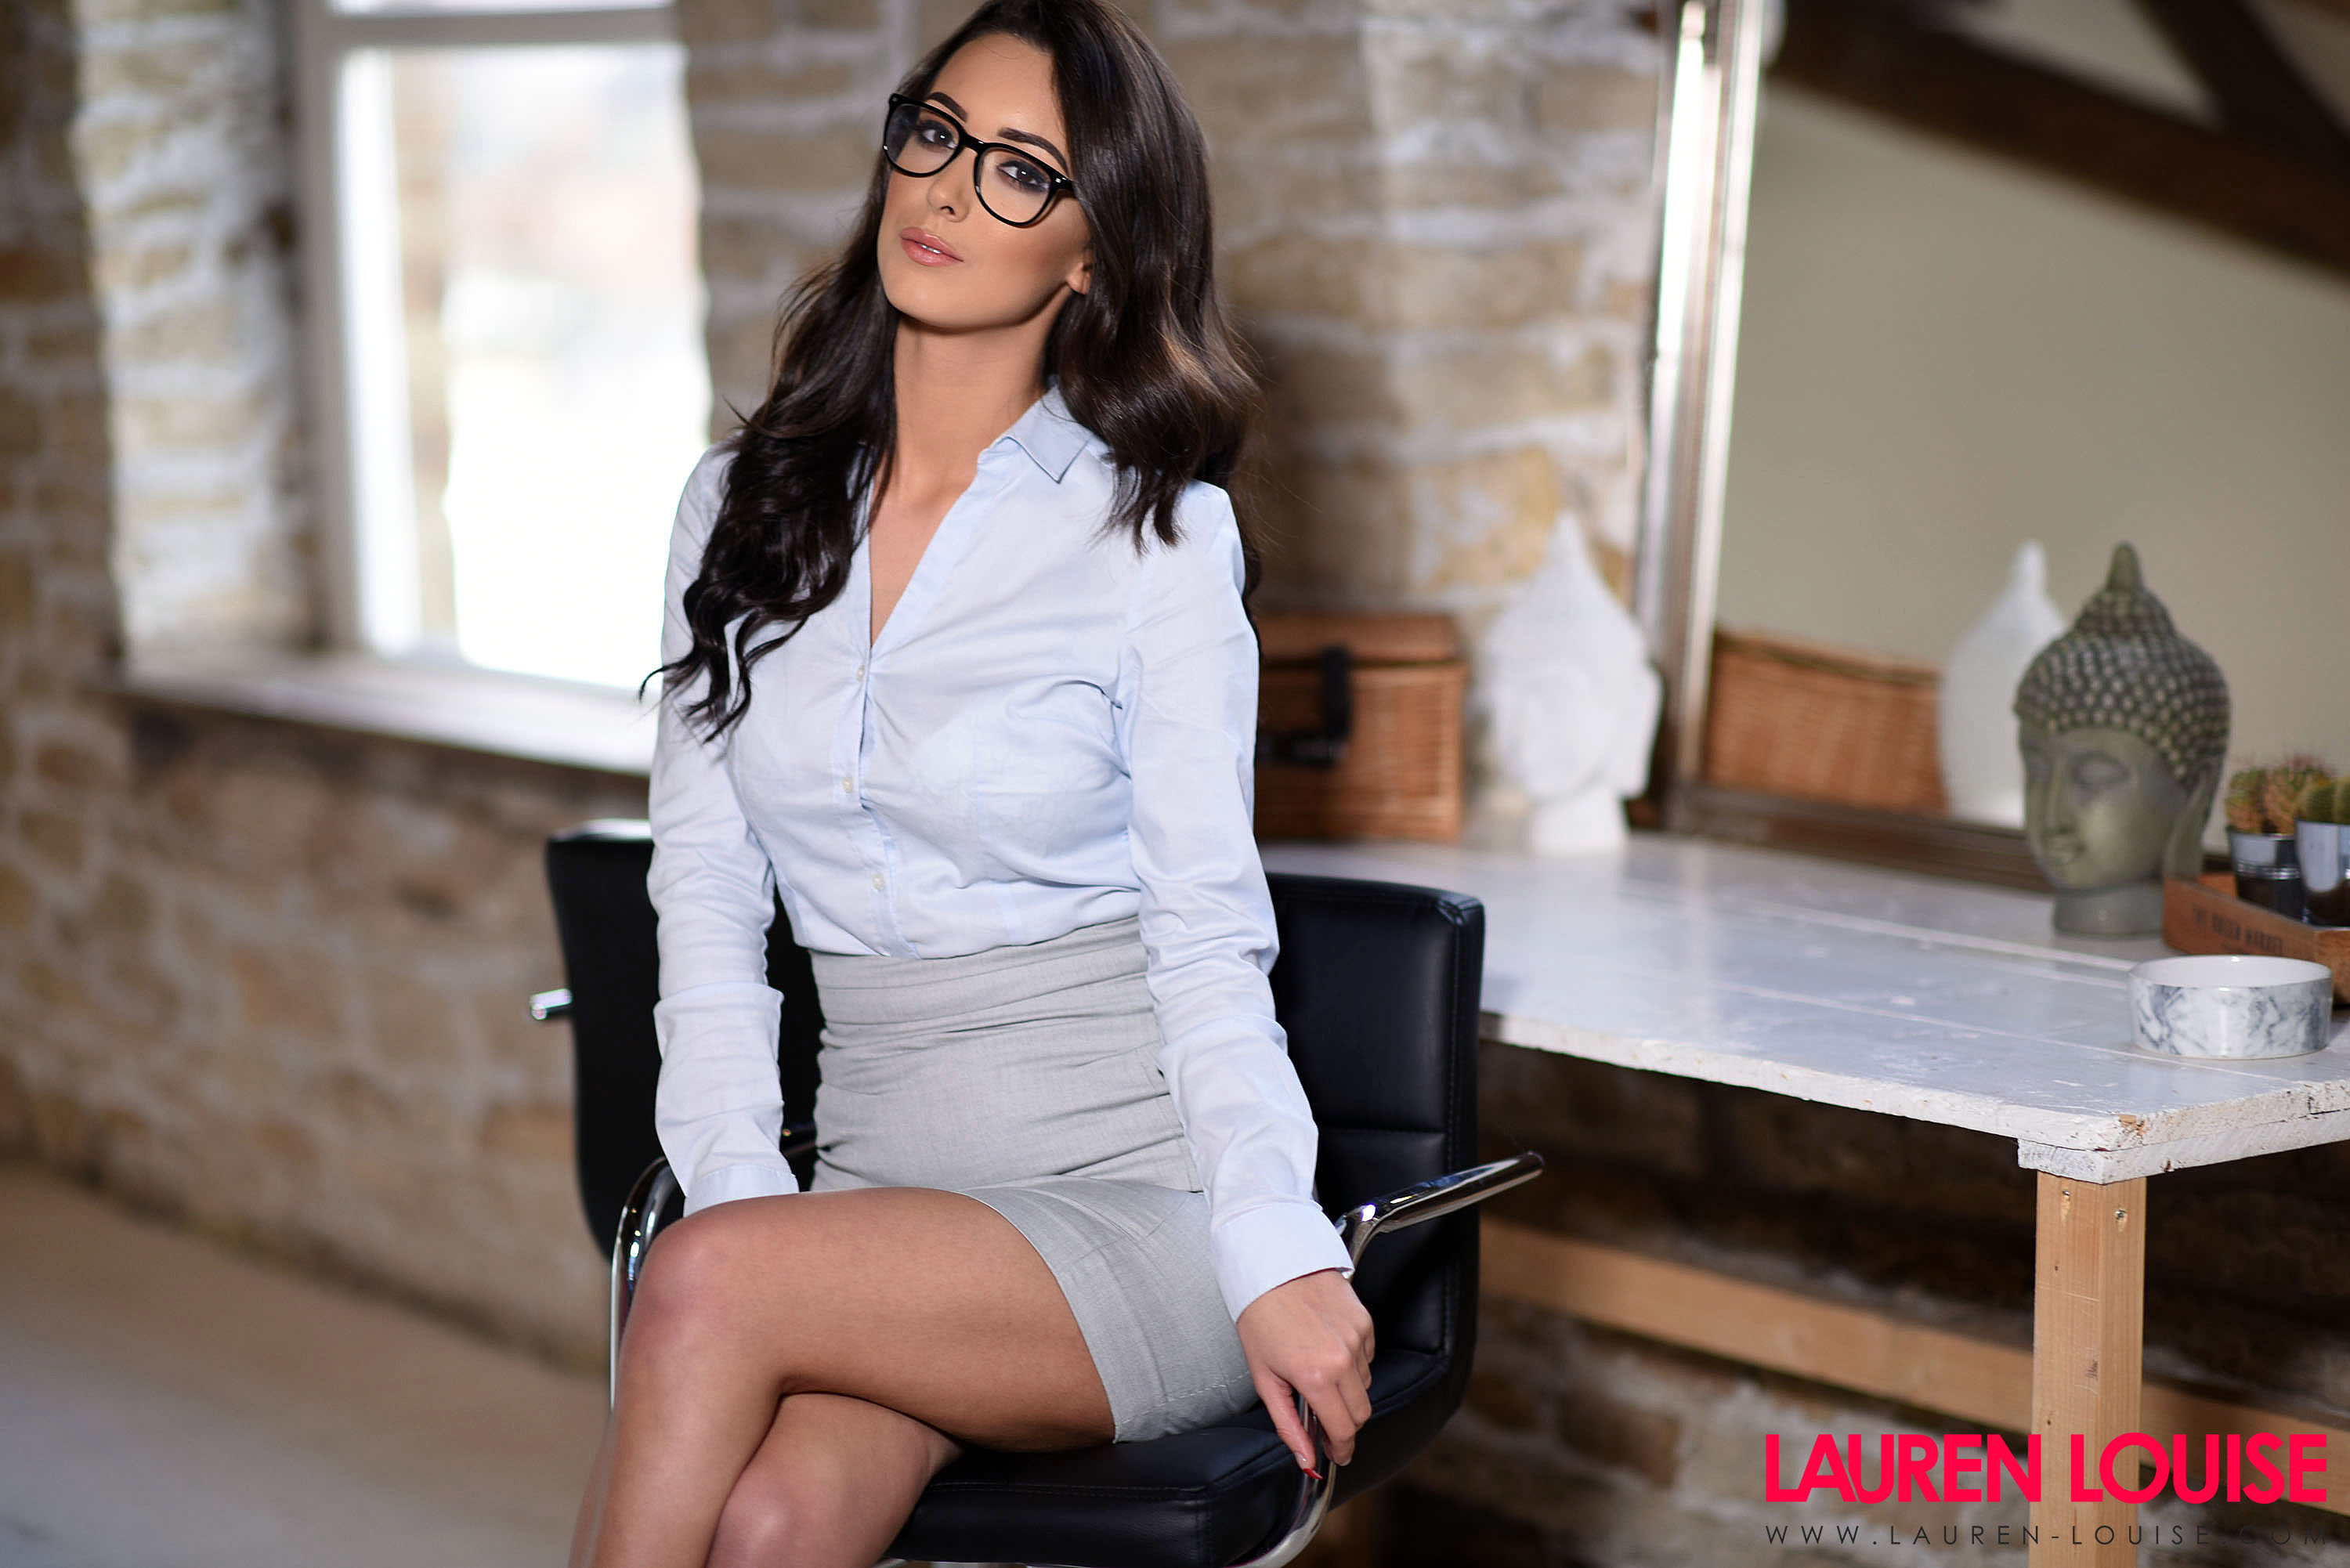 Lauren Louise Big Tits in Tight Secretary Outfit